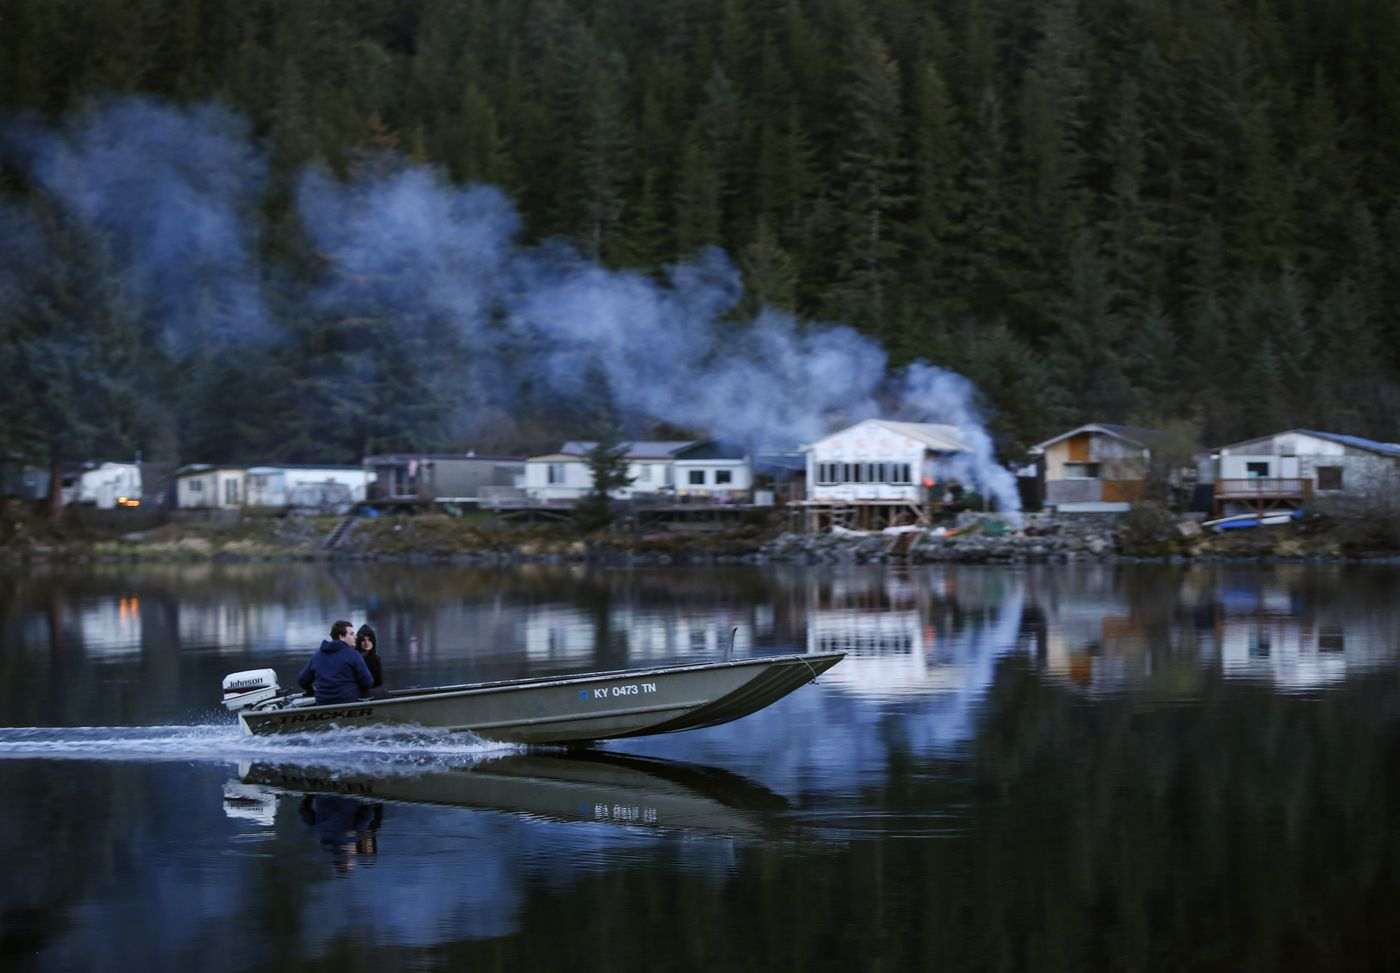 People cross Eyak Lake in a skiff and dock on a small gravel beach on the lake's west side just after sunset in Cordova on Monday, May 17, 2021. (Emily Mesner / ADN)